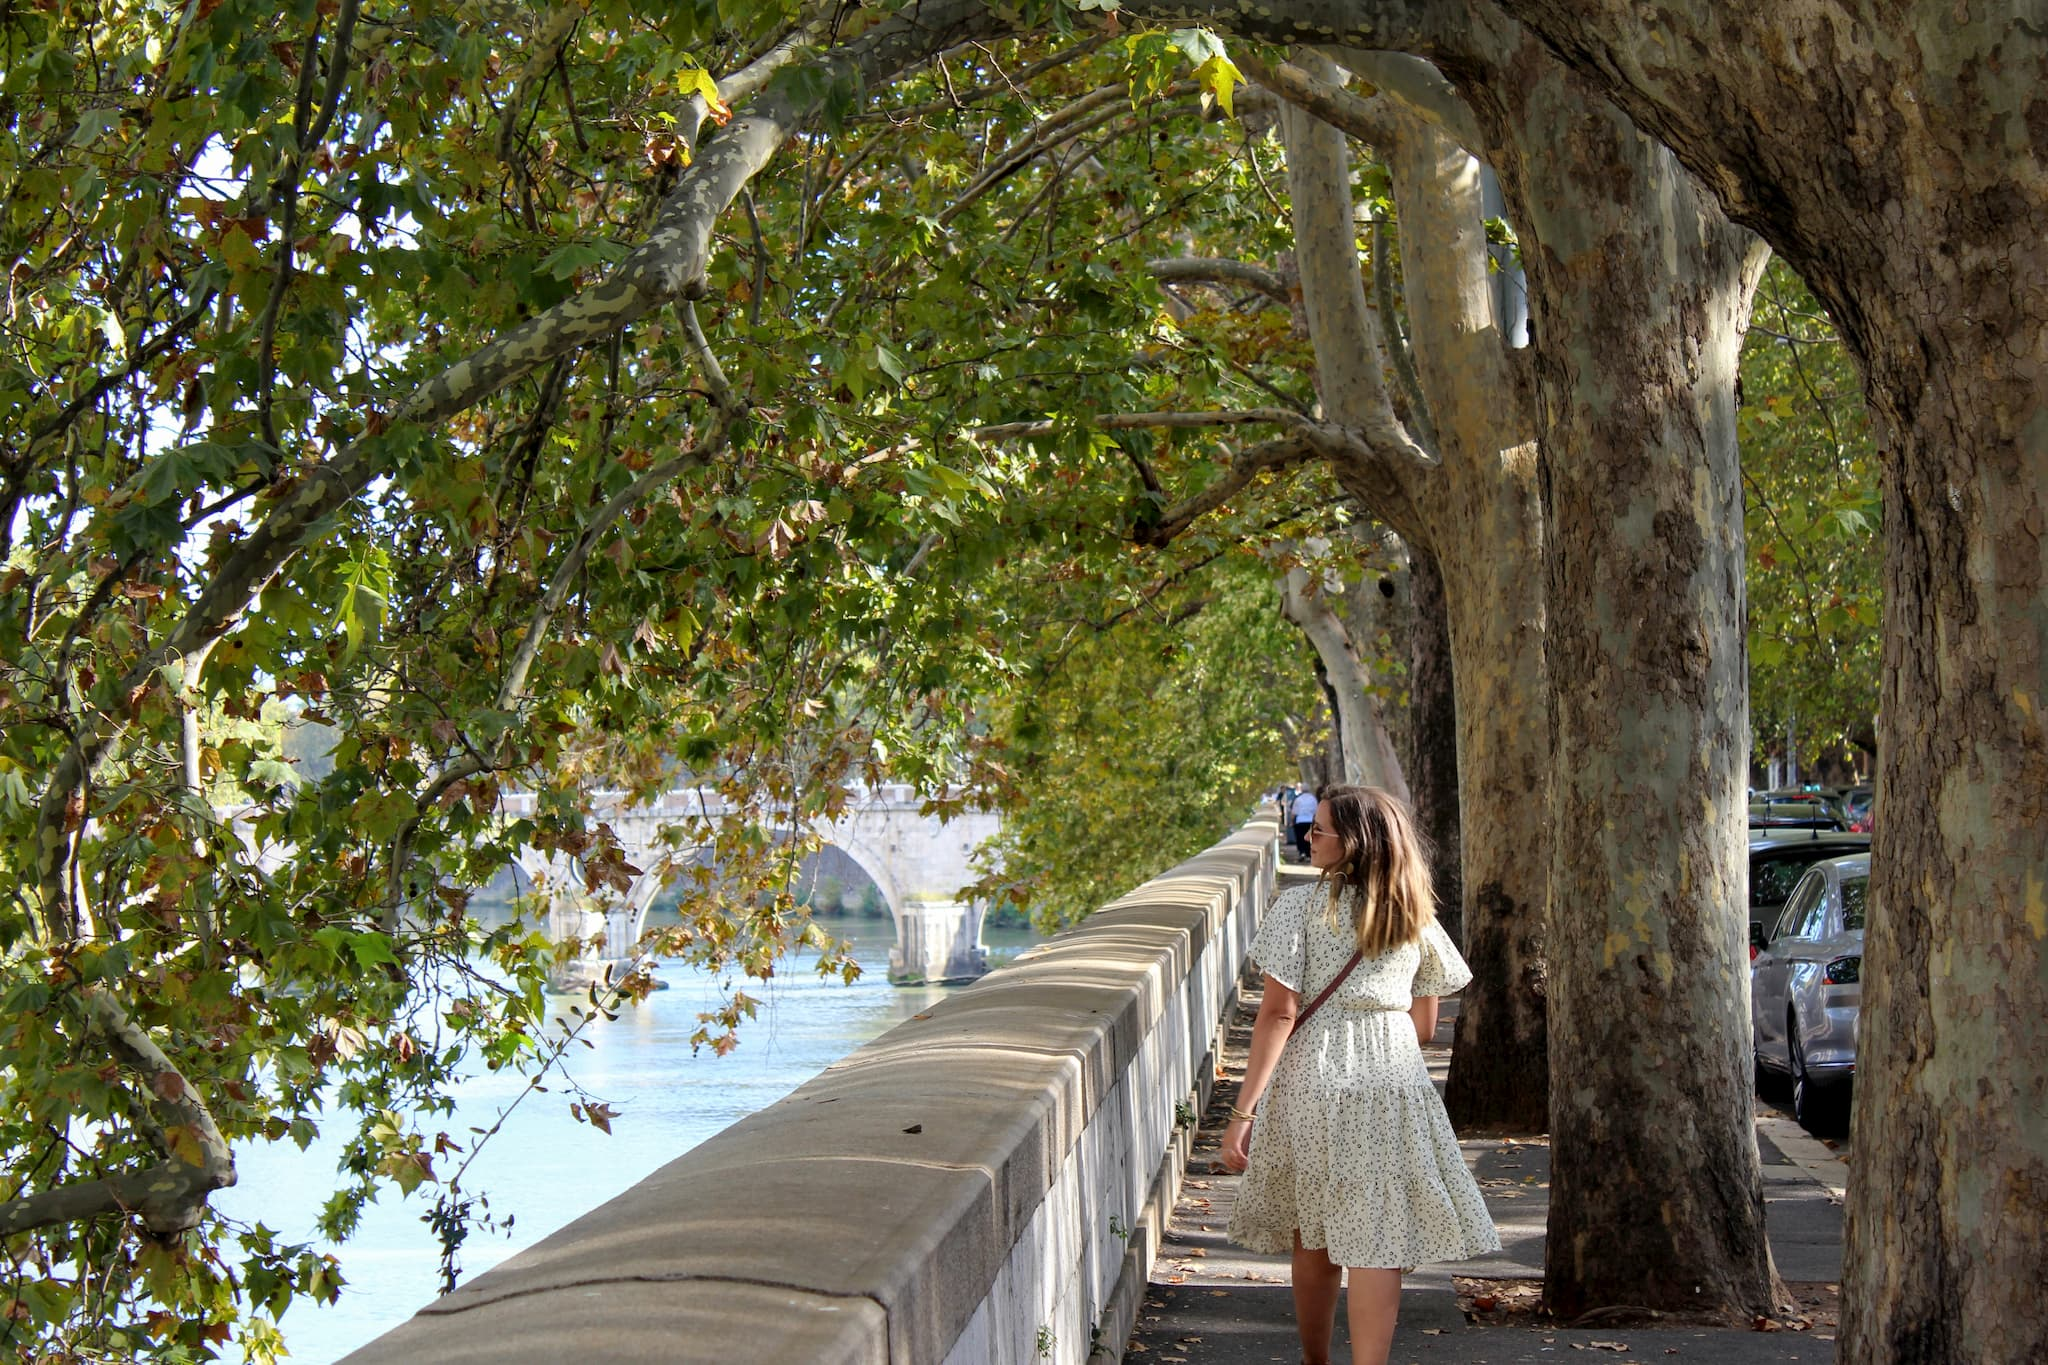 Woman walking down a sidewalk with tree branches stretching overhead towards the river down below